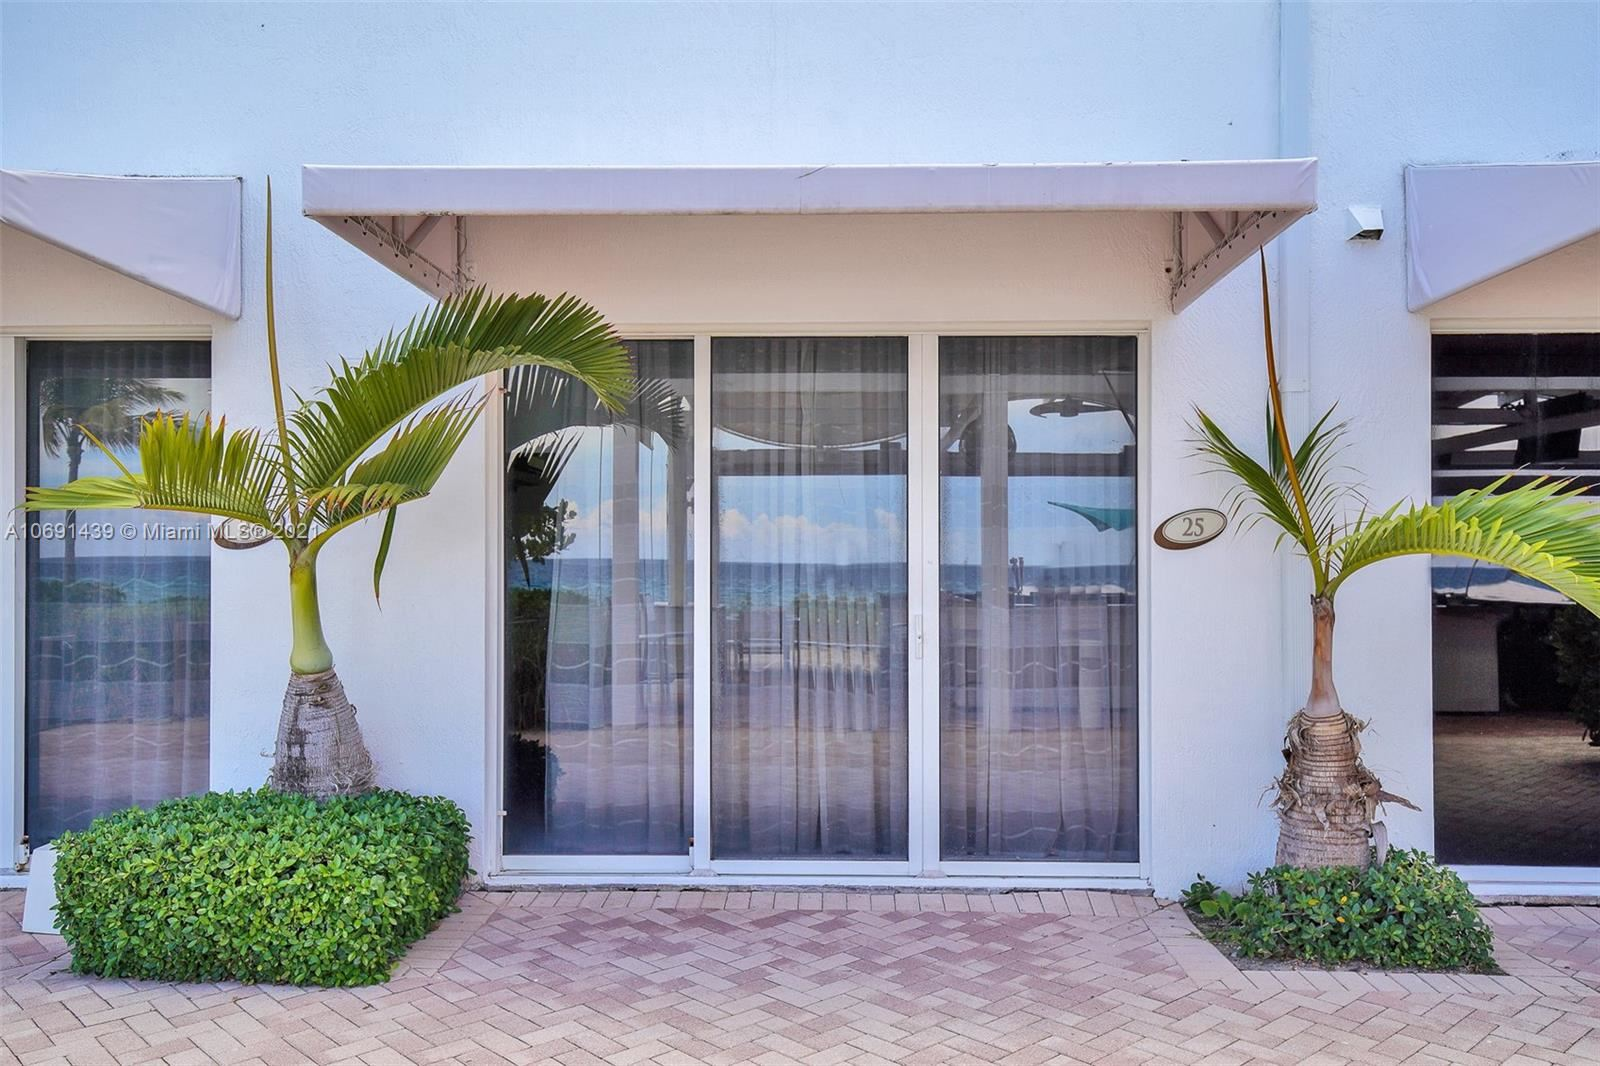 18001 COLLINS AVE #CAB 25, Sunny Isles, FL 33160 - #: A10691439